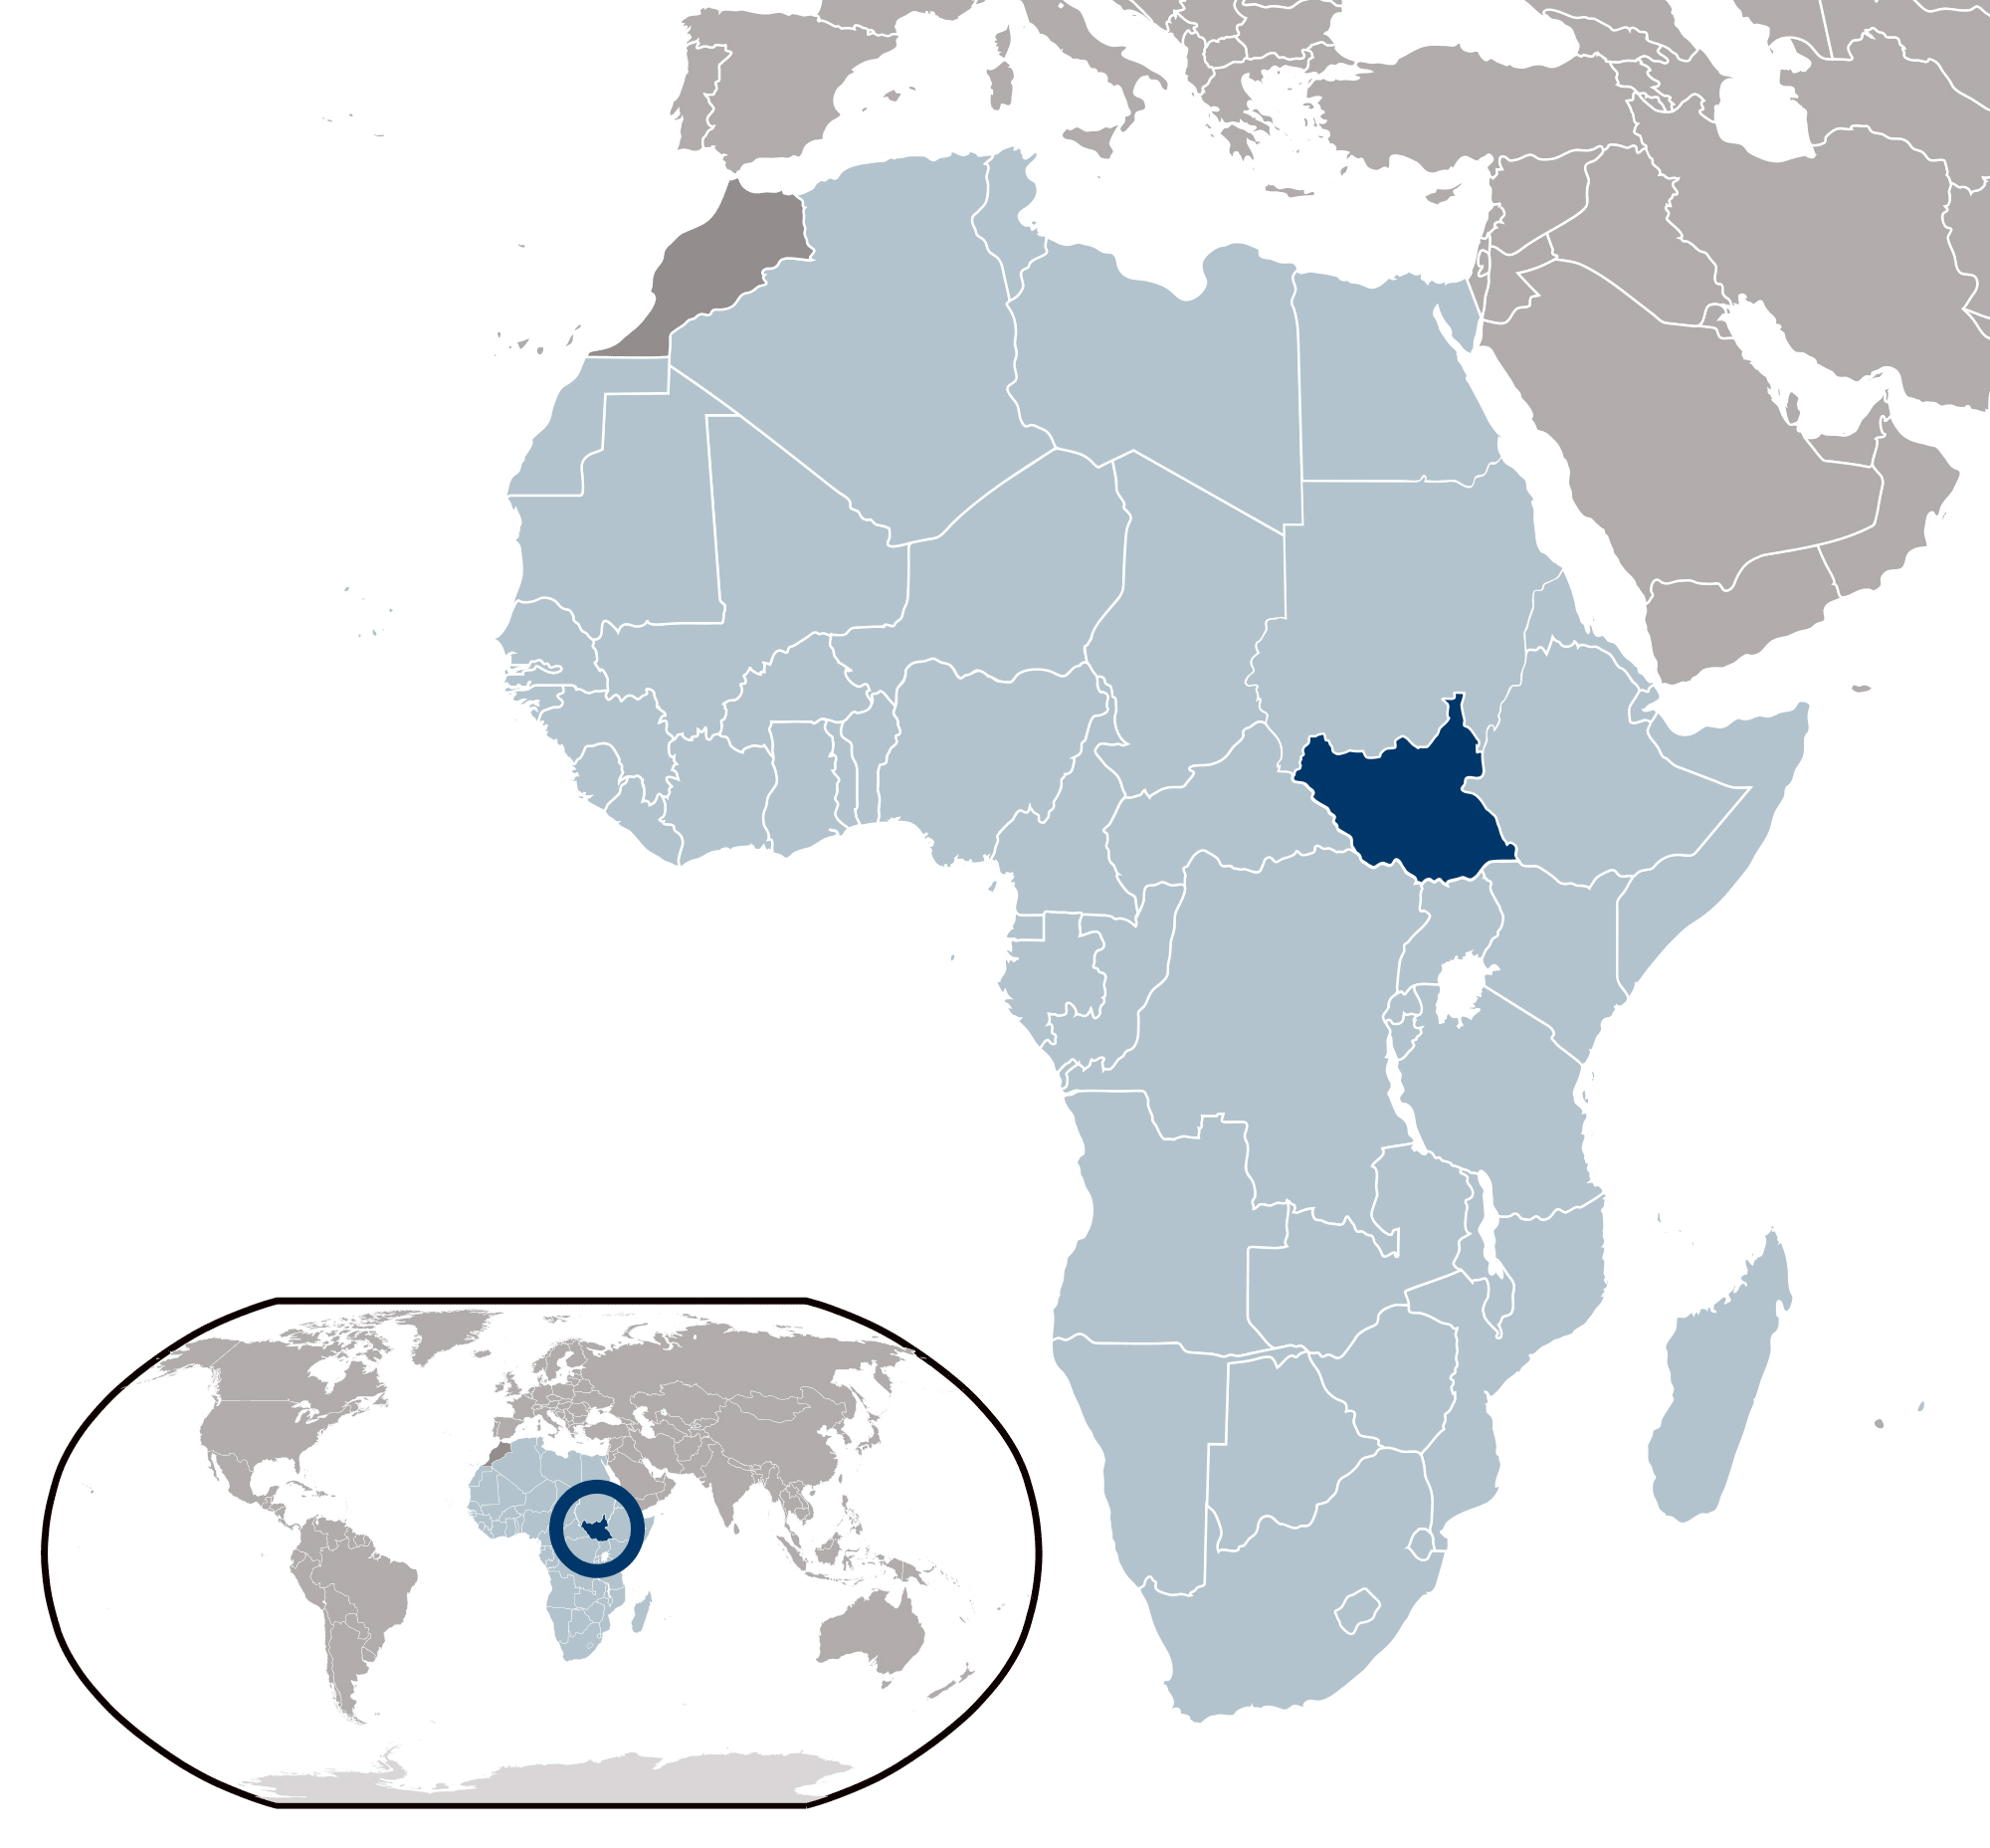 sudan map in africa Large Location Map Of South Sudan South Sudan Africa sudan map in africa